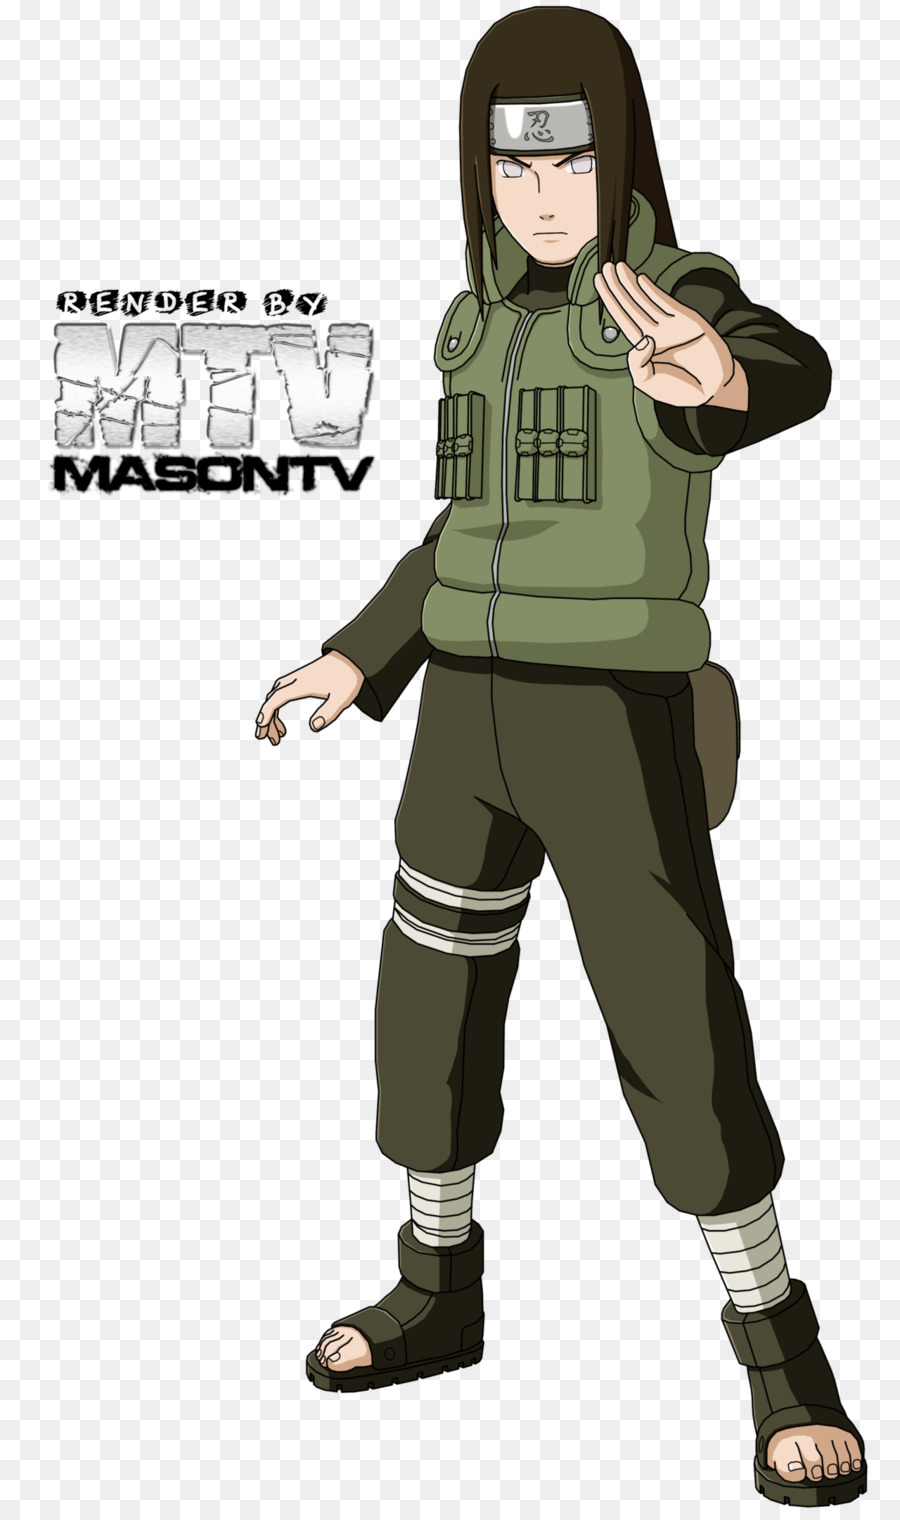 Neji hyuga clipart graphic royalty free library Soldier Cartoon png download - 1280*2153 - Free Transparent ... graphic royalty free library